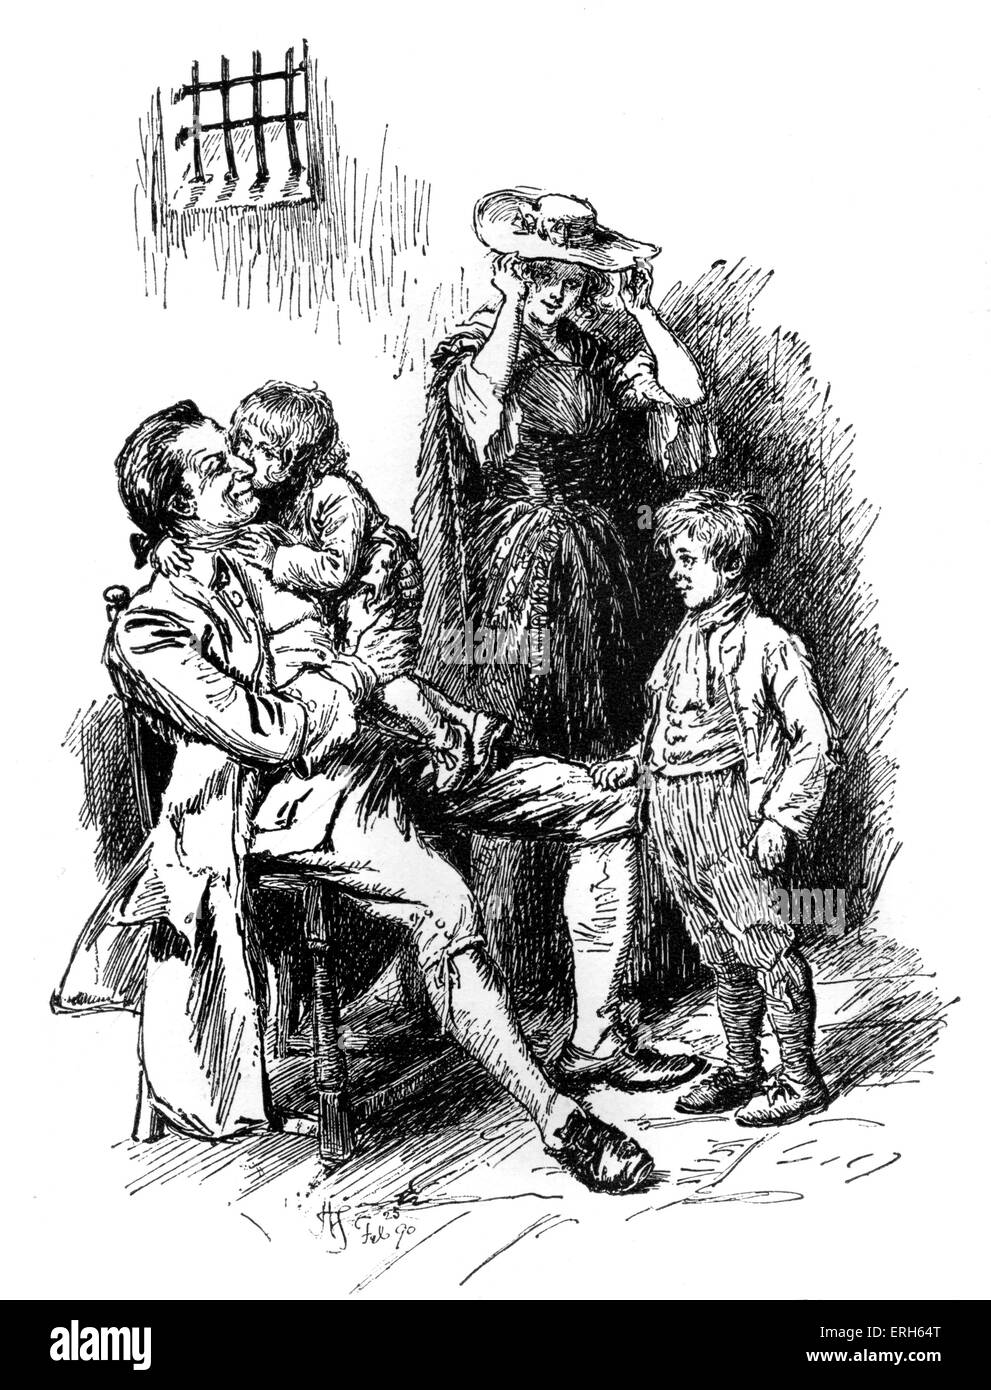 'The Vicar of Wakefield' by Hugh Thomson, taken from an illustration of a Macmillan edition of the book - Stock Image